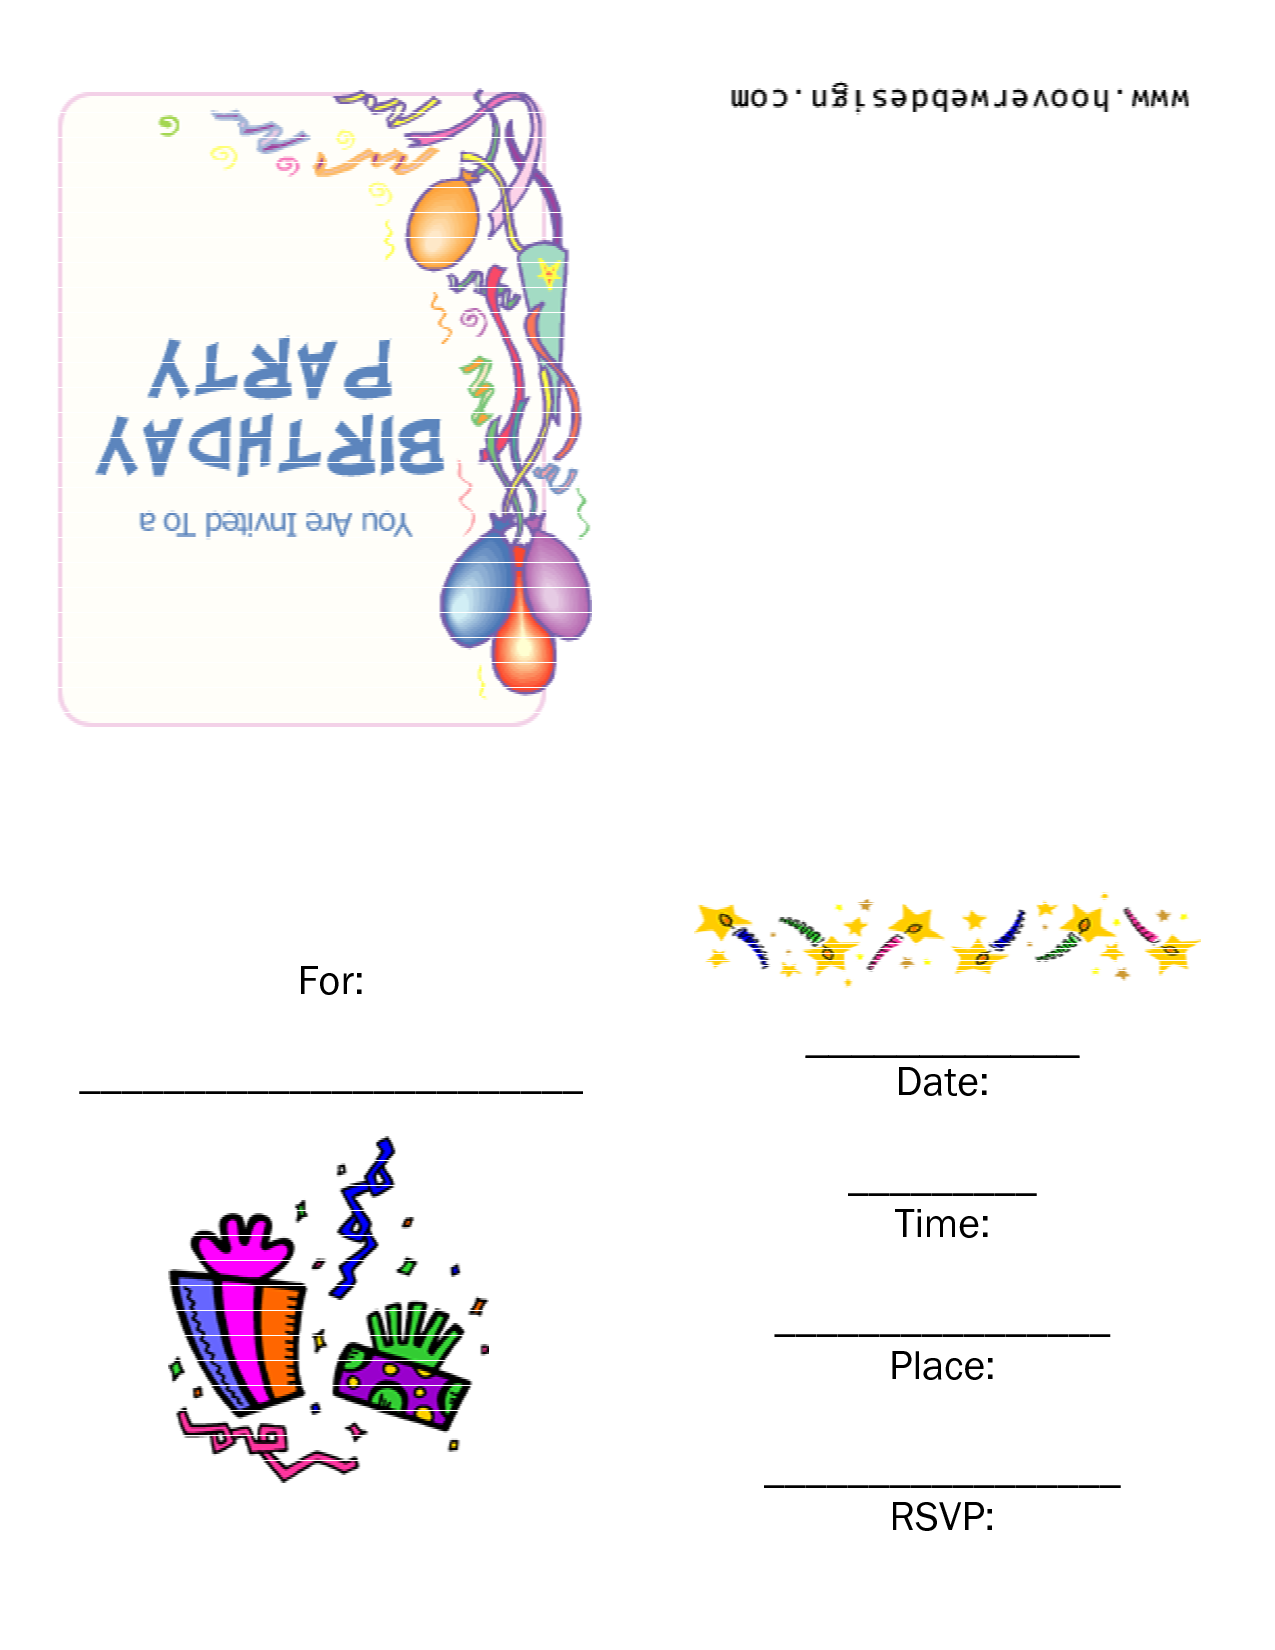 Free PNG HD For Birthday Invitations Transparent HD For Birthday ...